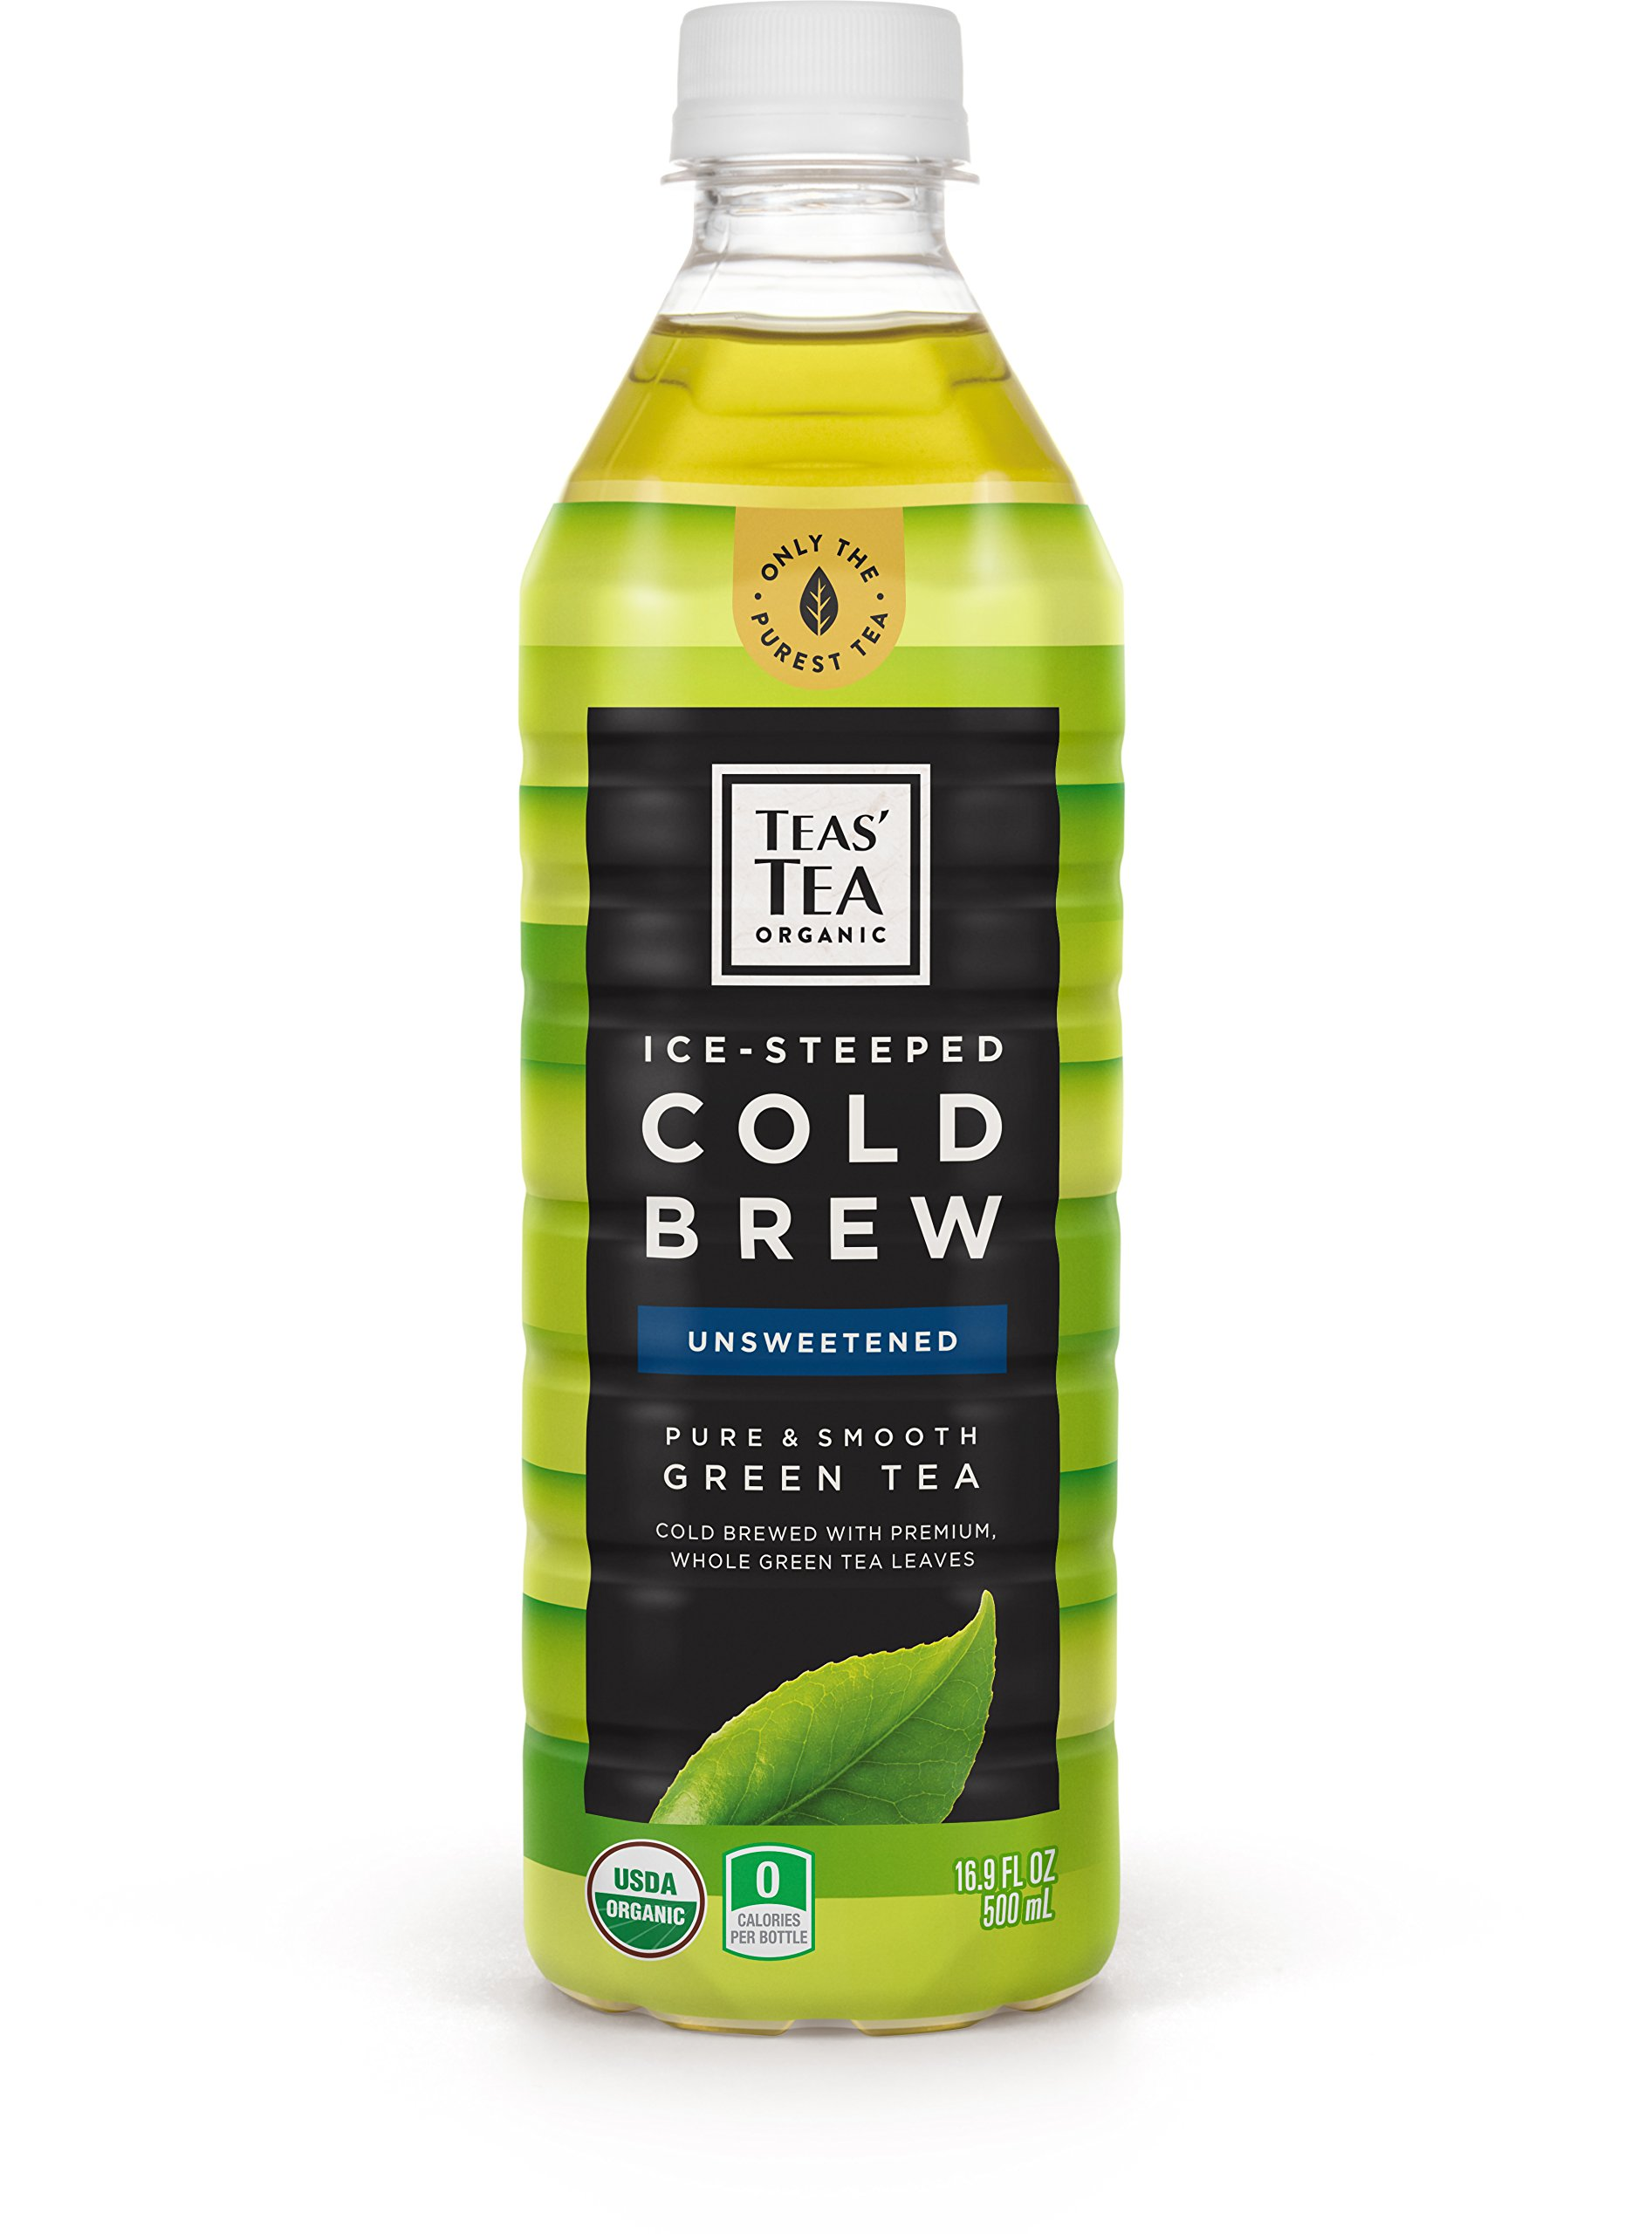 Teas' Tea Organic Cold Brew Unsweetened Green Tea (Pack of 12) Organic Zero Calories No Sugars No Artificial Sweeteners Antioxidant Rich High in Vitamin C by Teas' Tea